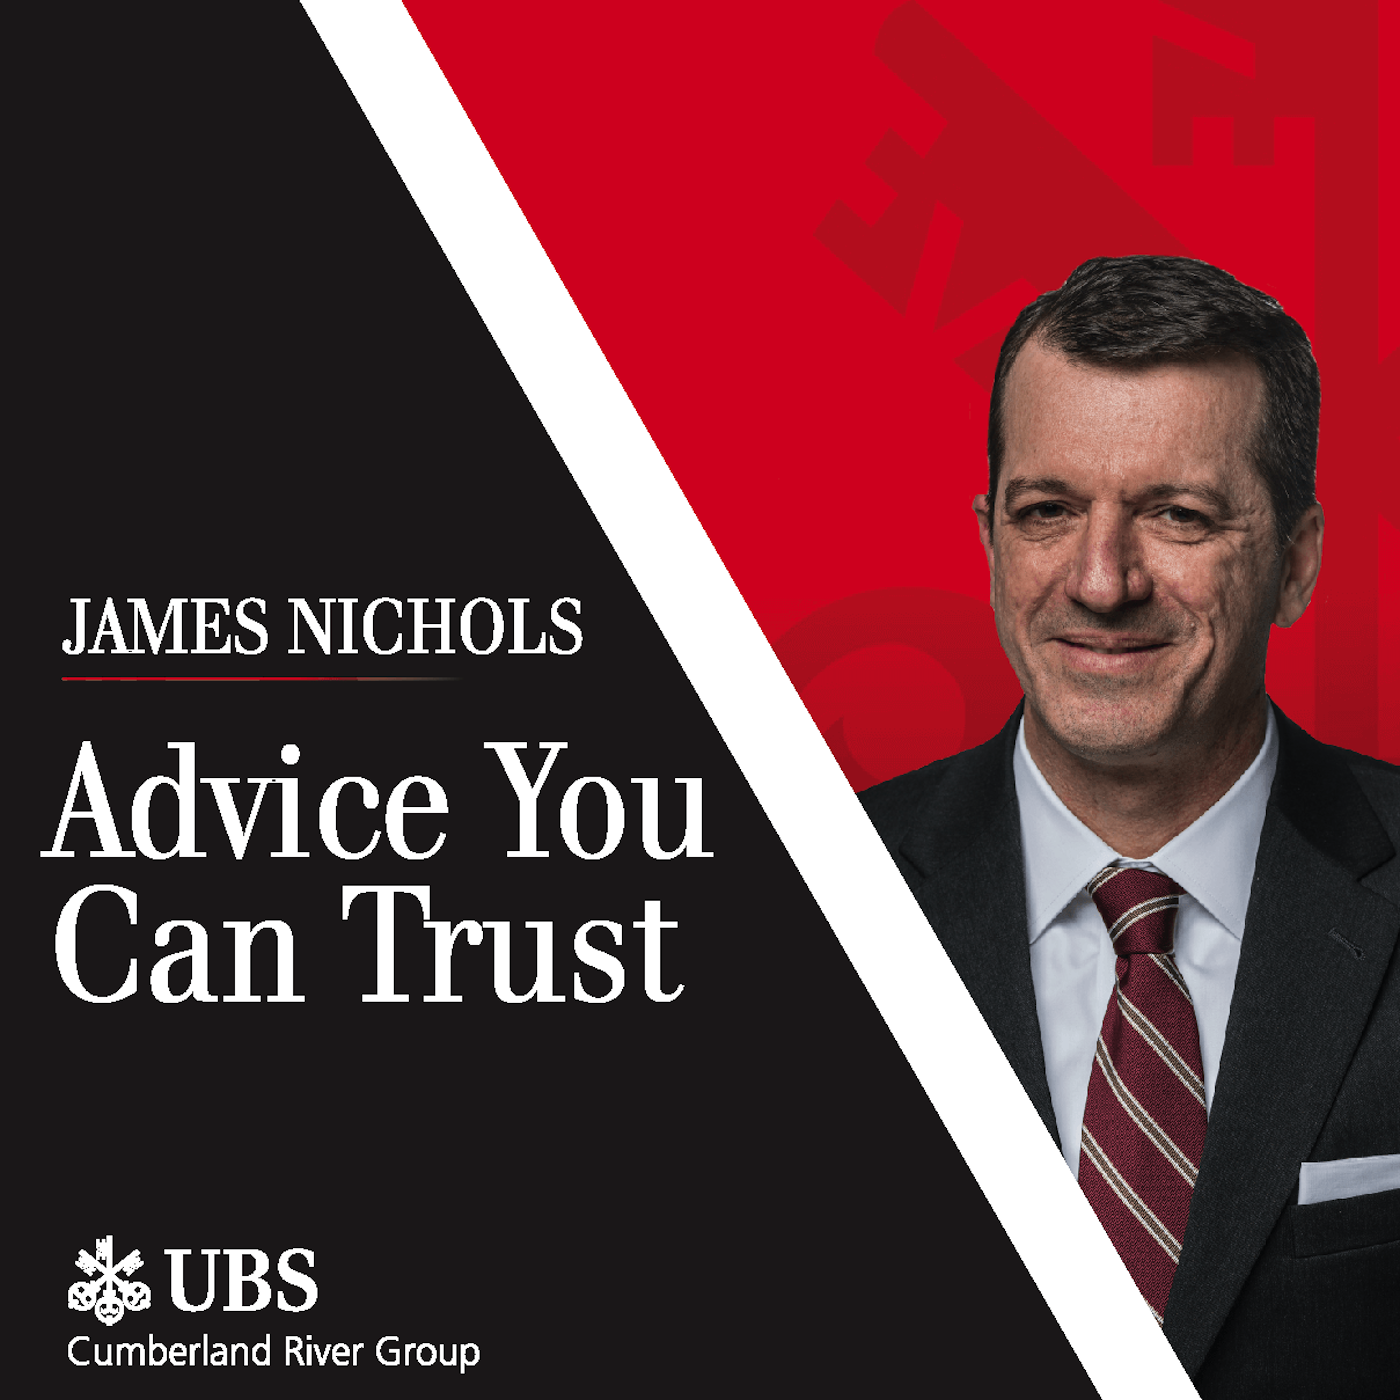 Advice You Can Trust